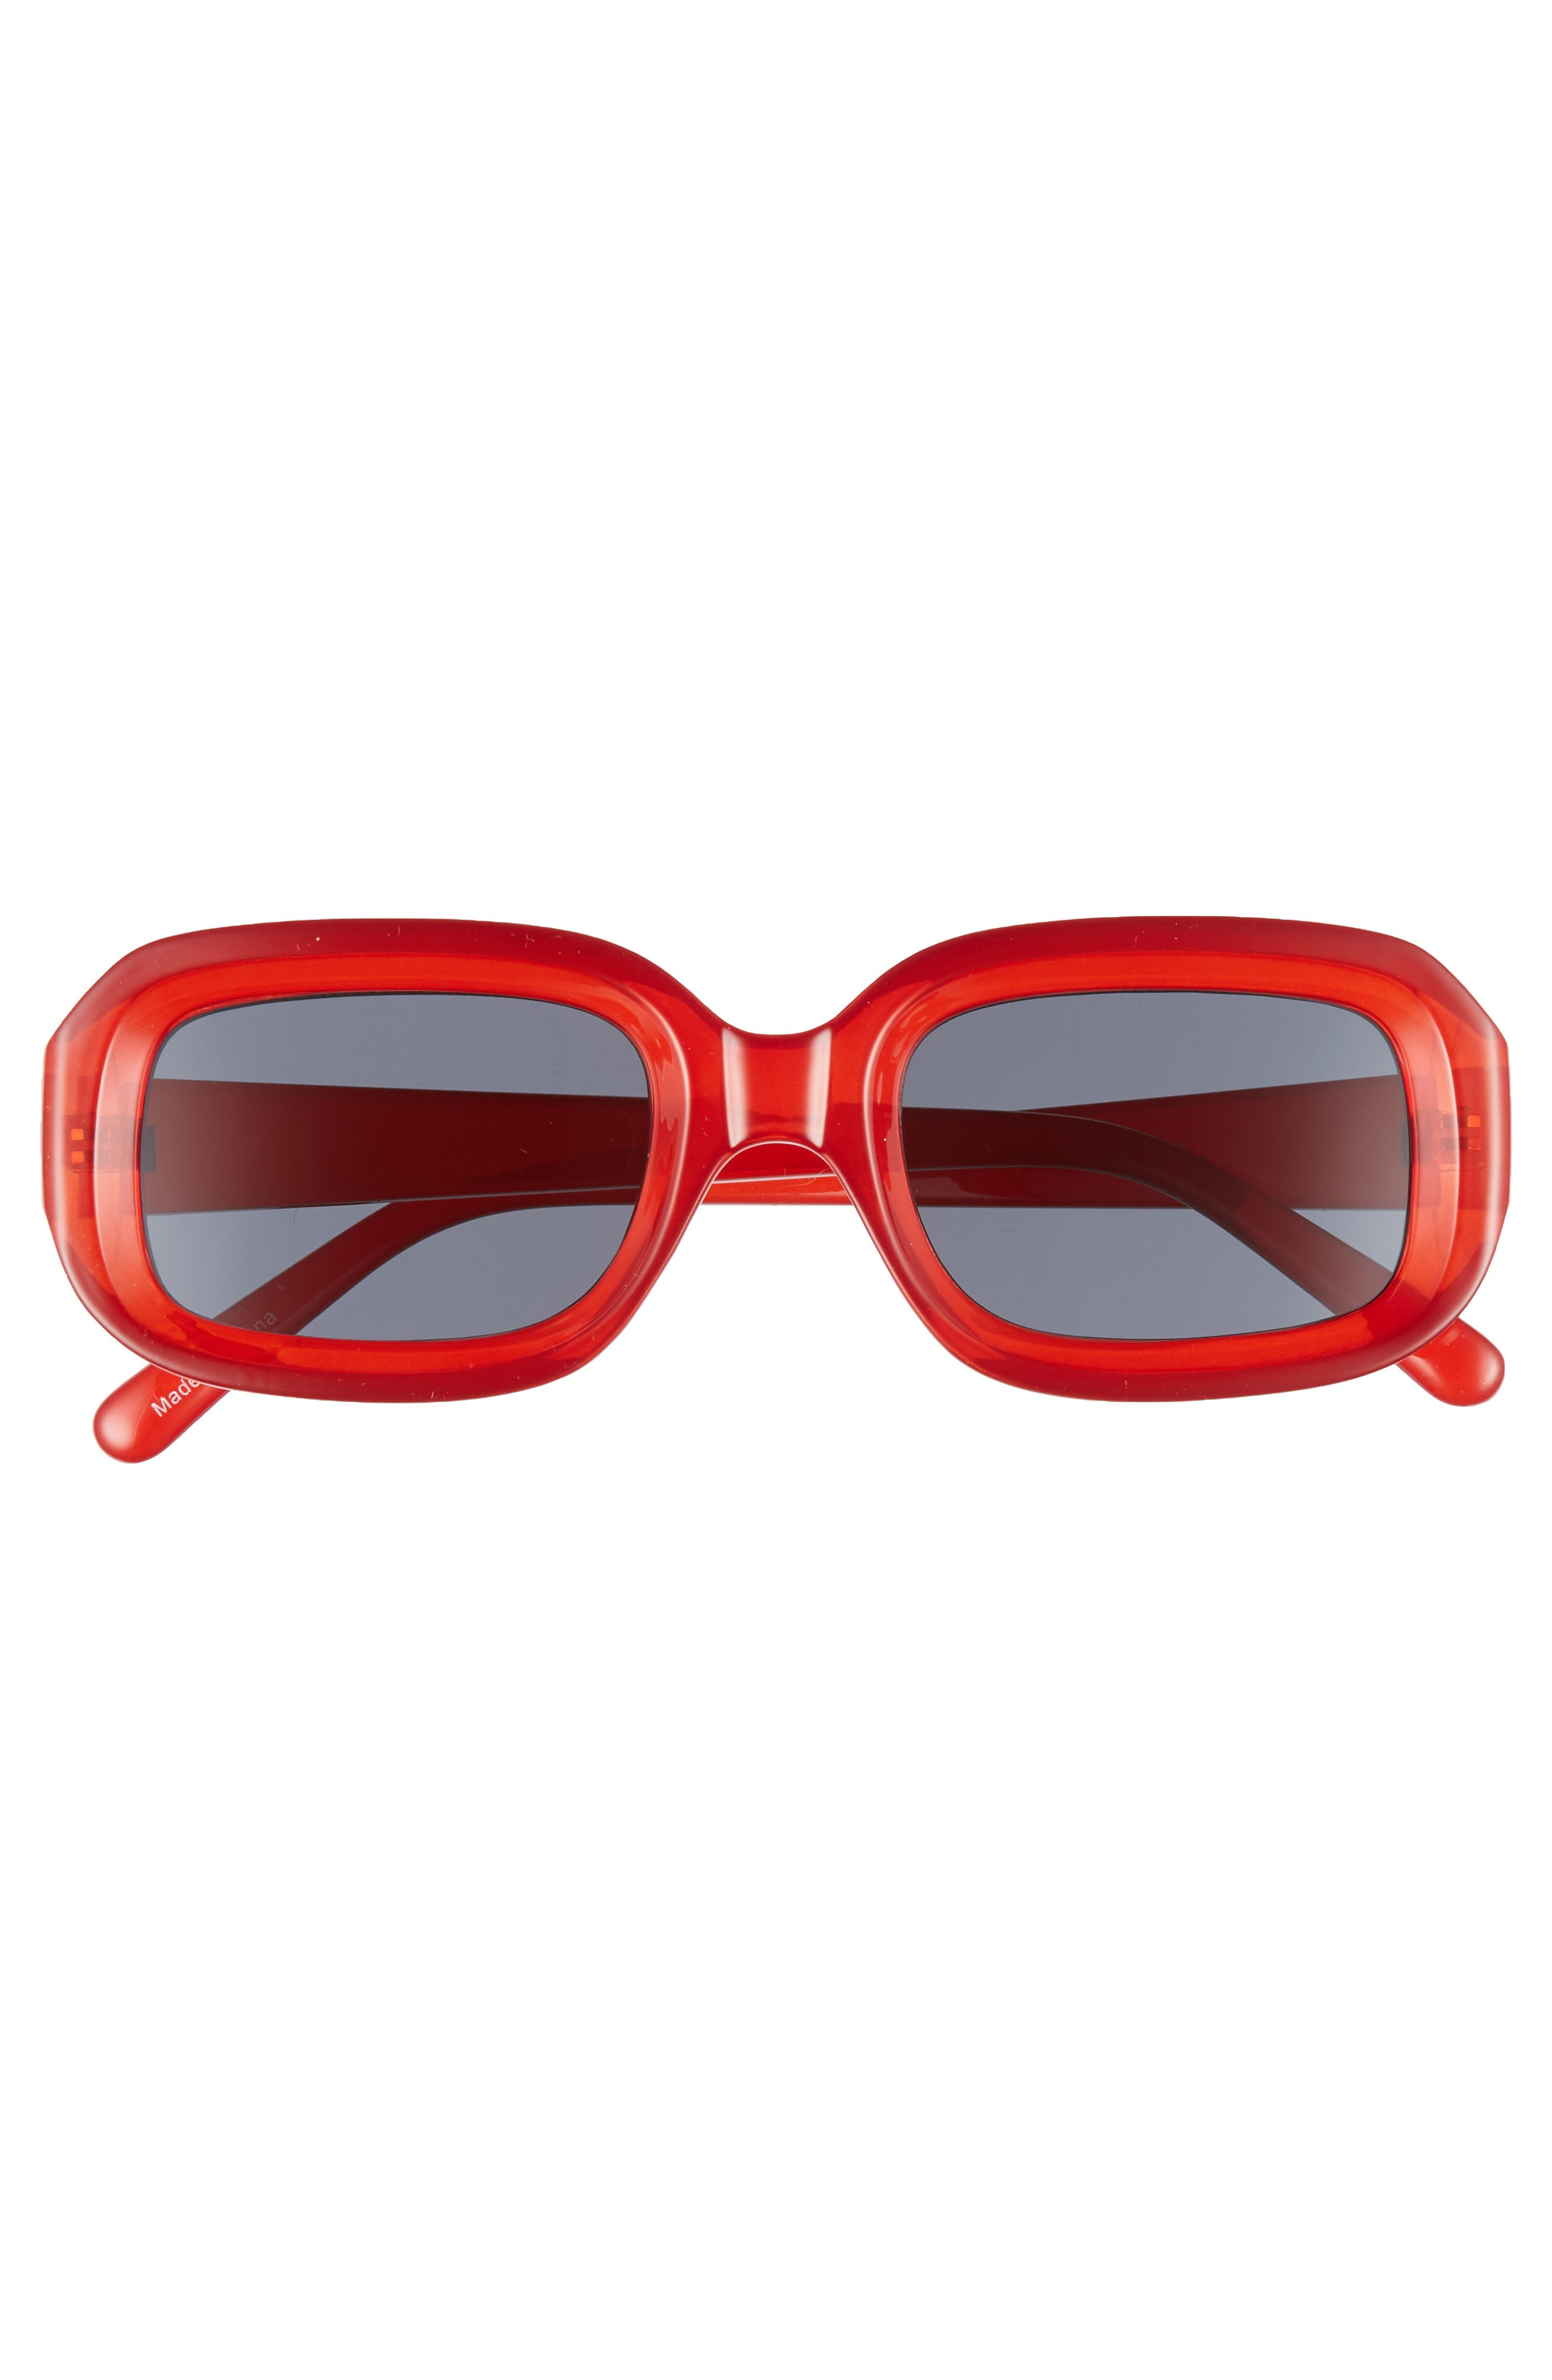 66mm Inset Square Sunglasses,                             Alternate thumbnail 3, color,                             RED/ BLACK